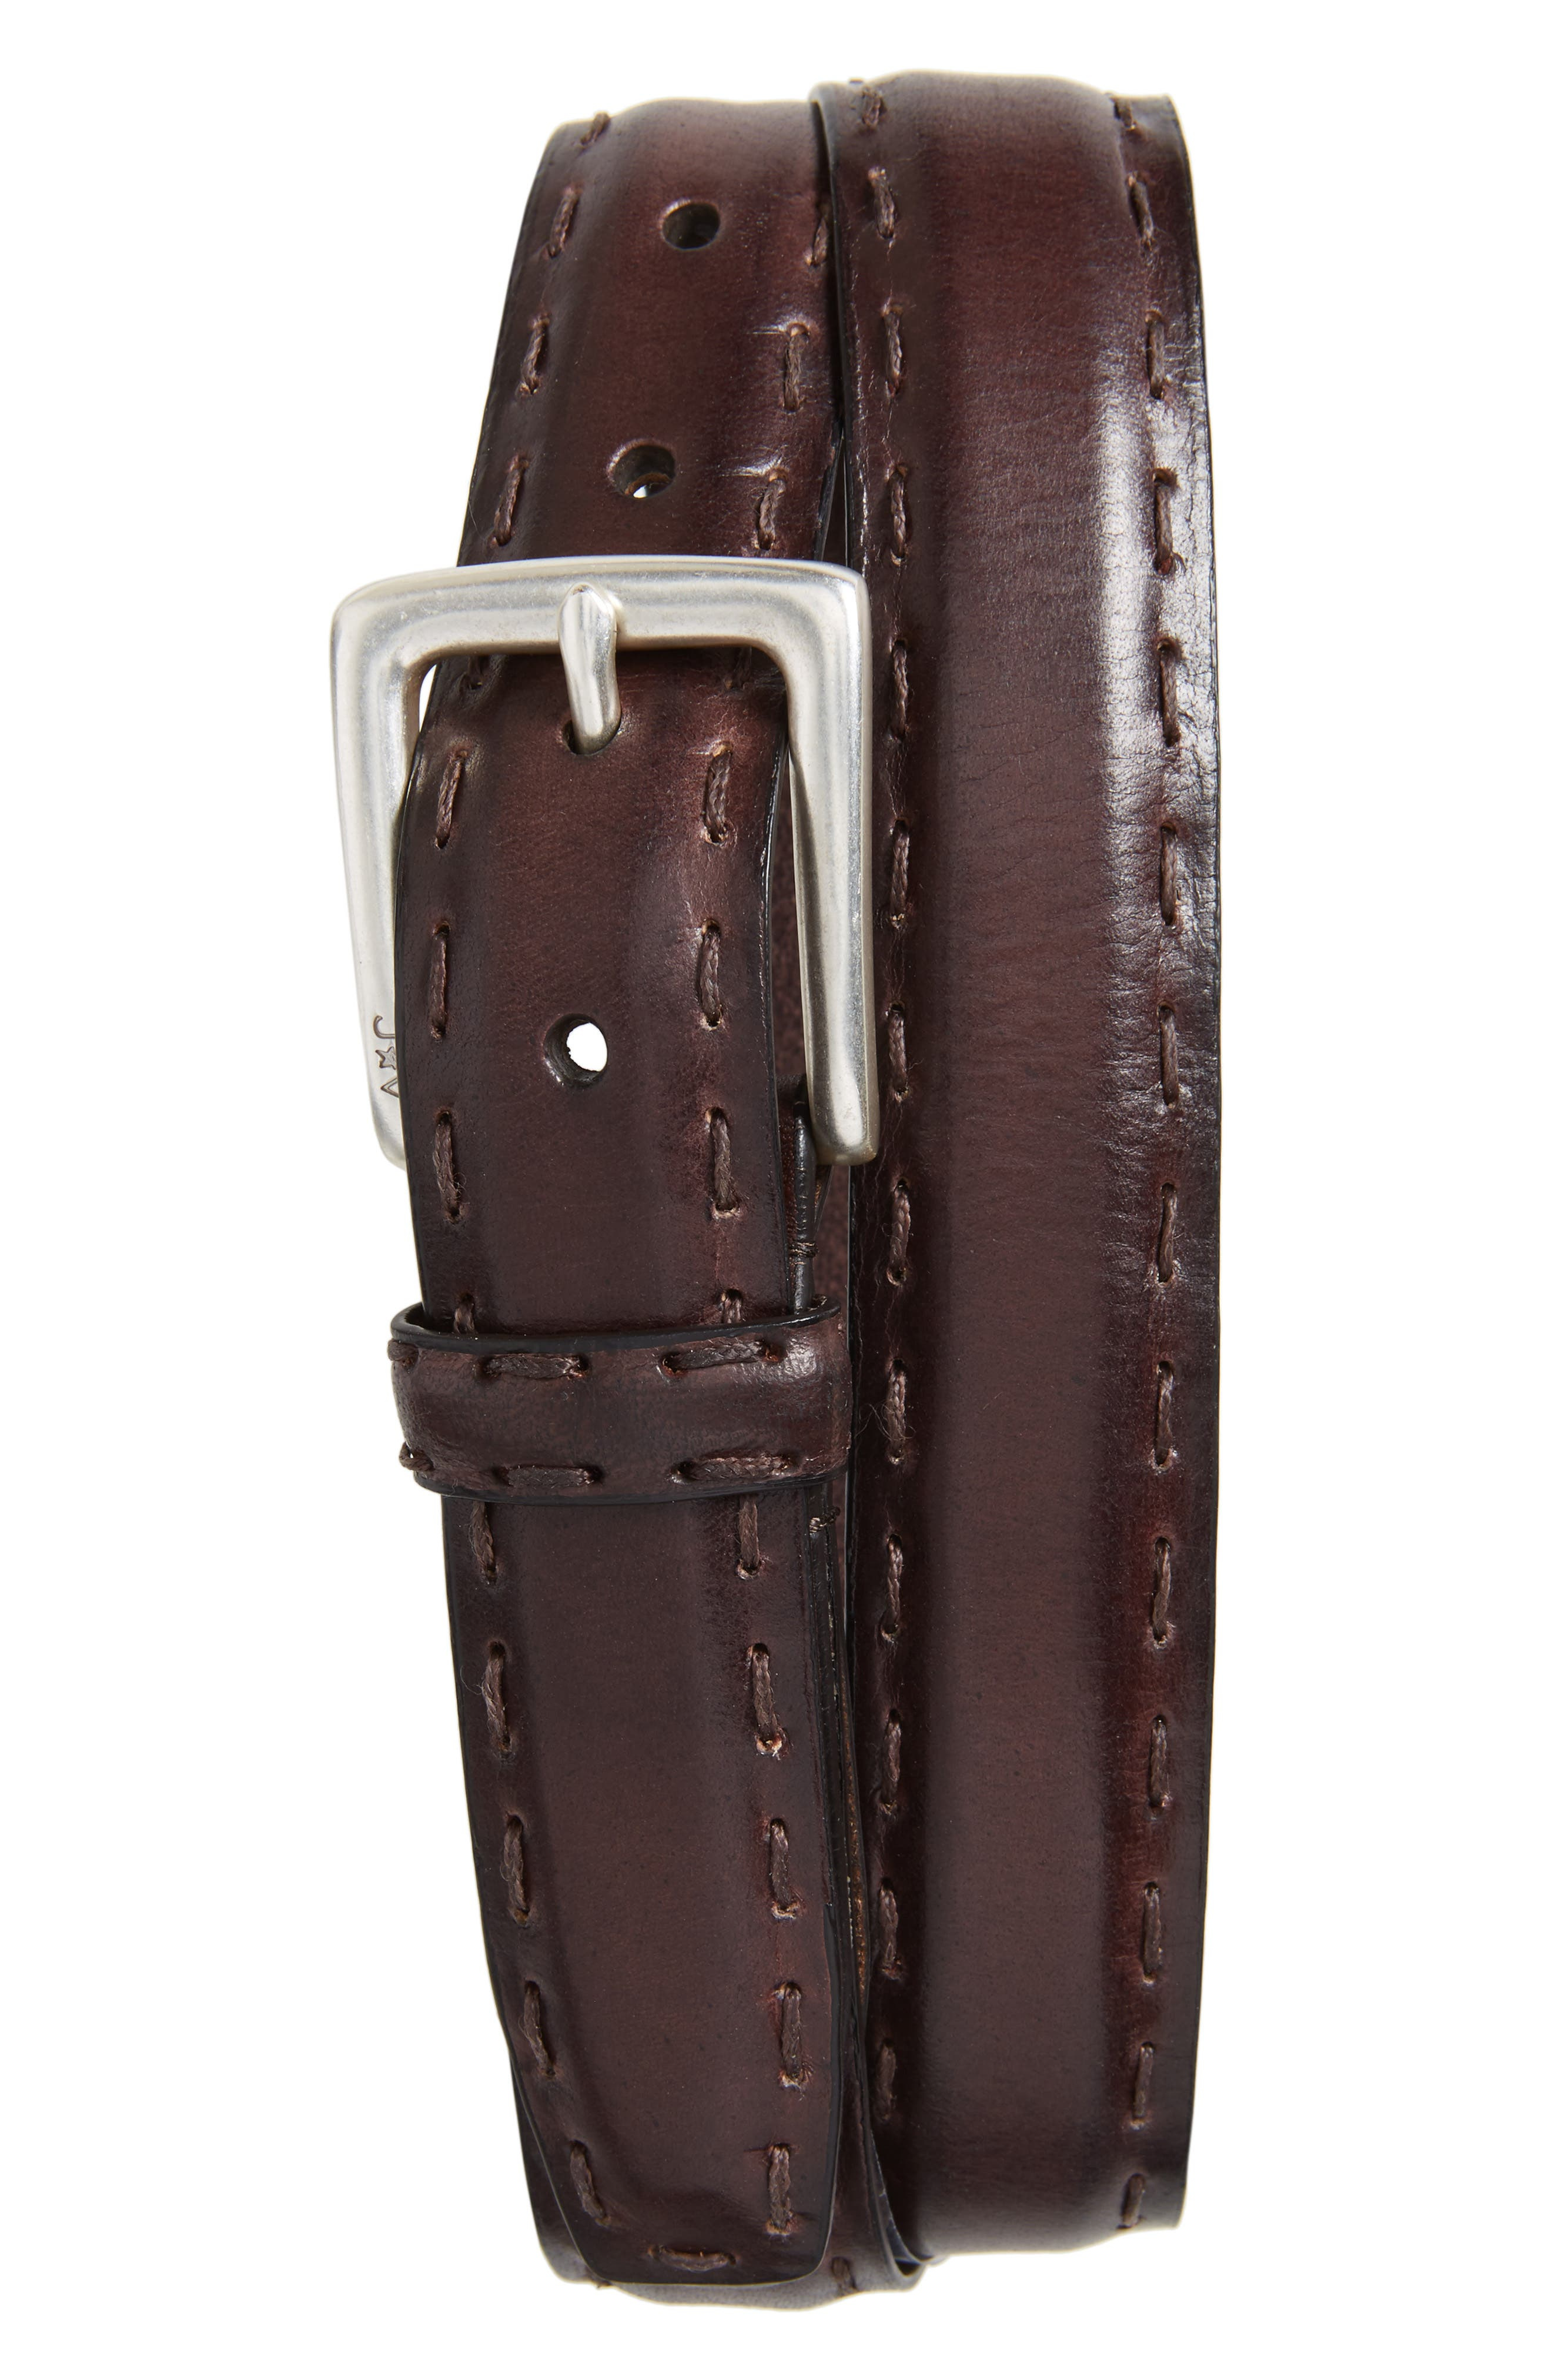 Pickstitch Feather Edge Leather Belt,                             Main thumbnail 1, color,                             Chocolate